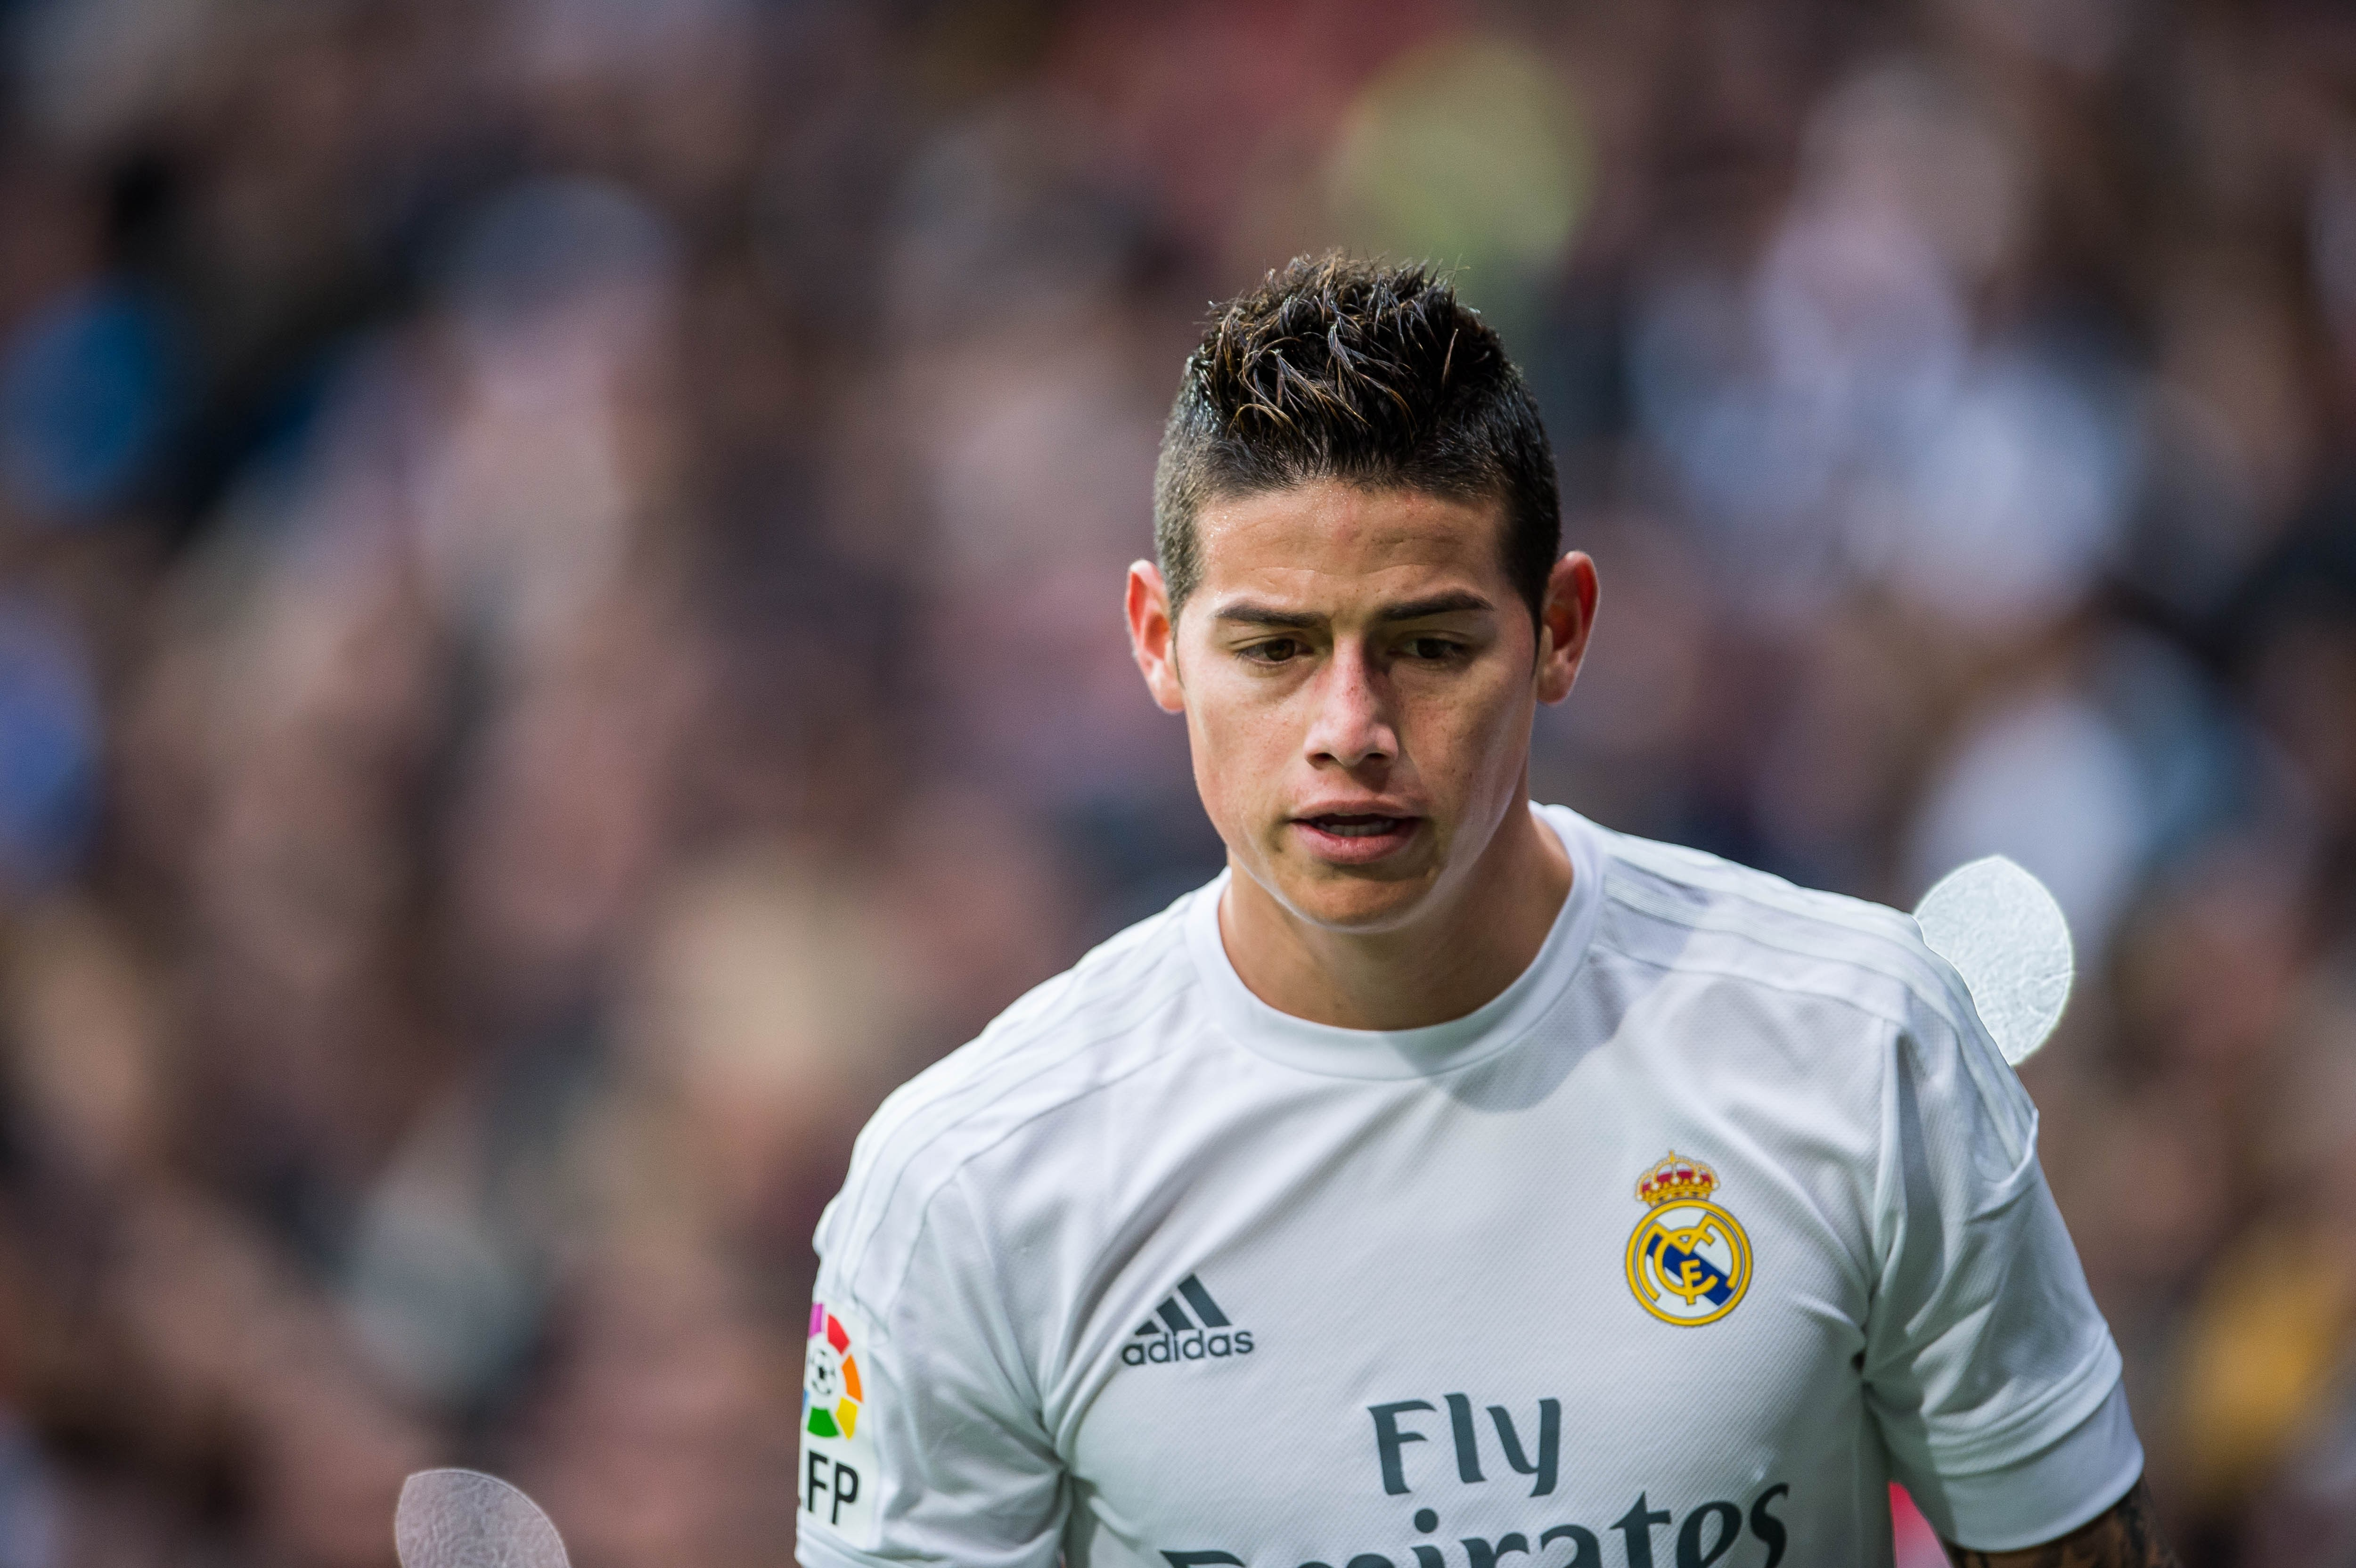 James rodriguez hd sports 4k wallpapers images backgrounds photos and pictures - Wallpaper james ...